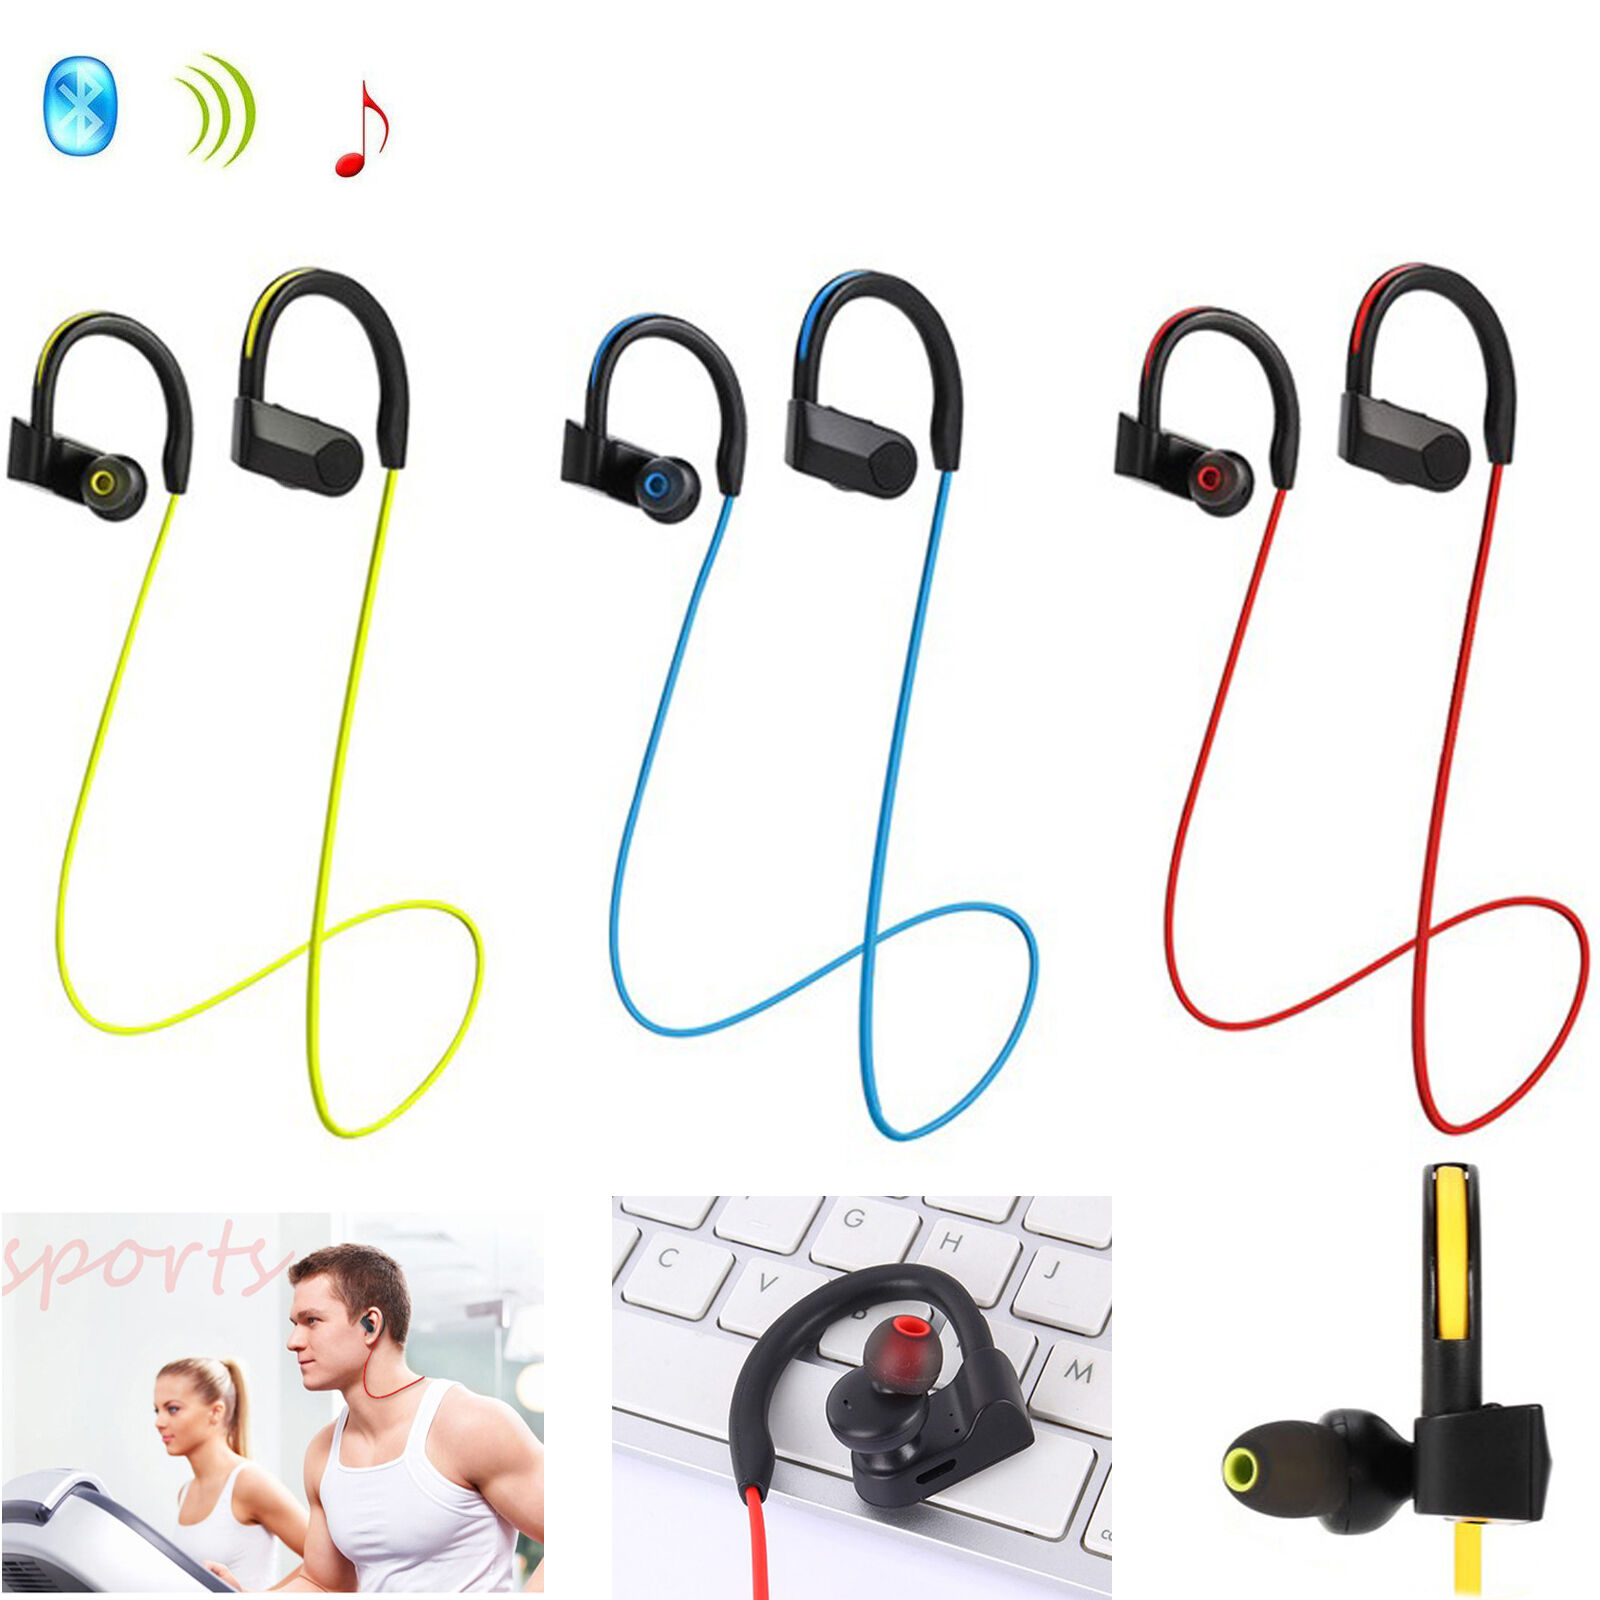 bluetooth headset wireless stereo earpiece for iphone. Black Bedroom Furniture Sets. Home Design Ideas